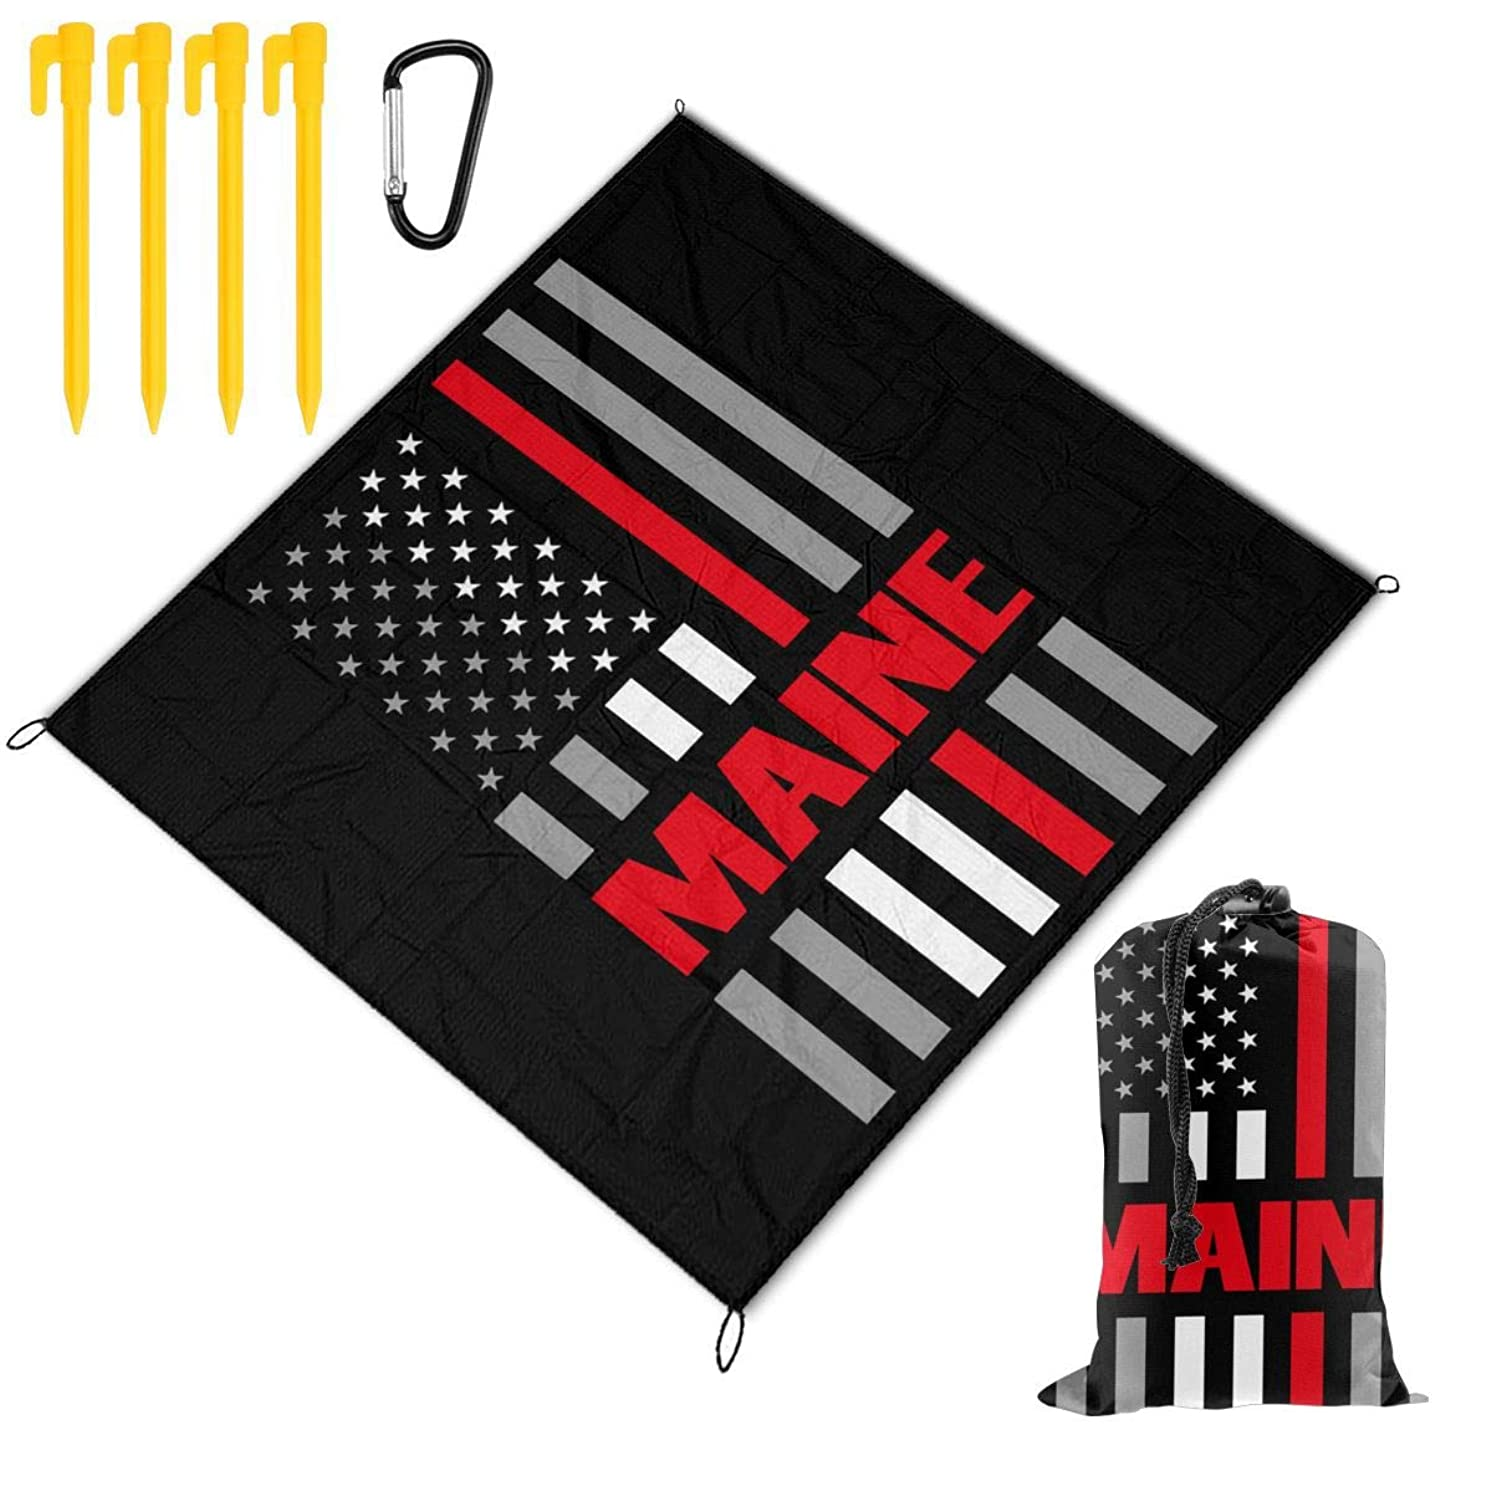 XL-HUALA Maine USA Thin Red Line Flag Picnic Blanket Outdoor Beach Blanket 57??x59?? - Waterproof Lightweight Used for Indoor and Outdoor Activities, Festival Events, Hiking, Camping, Traveling.